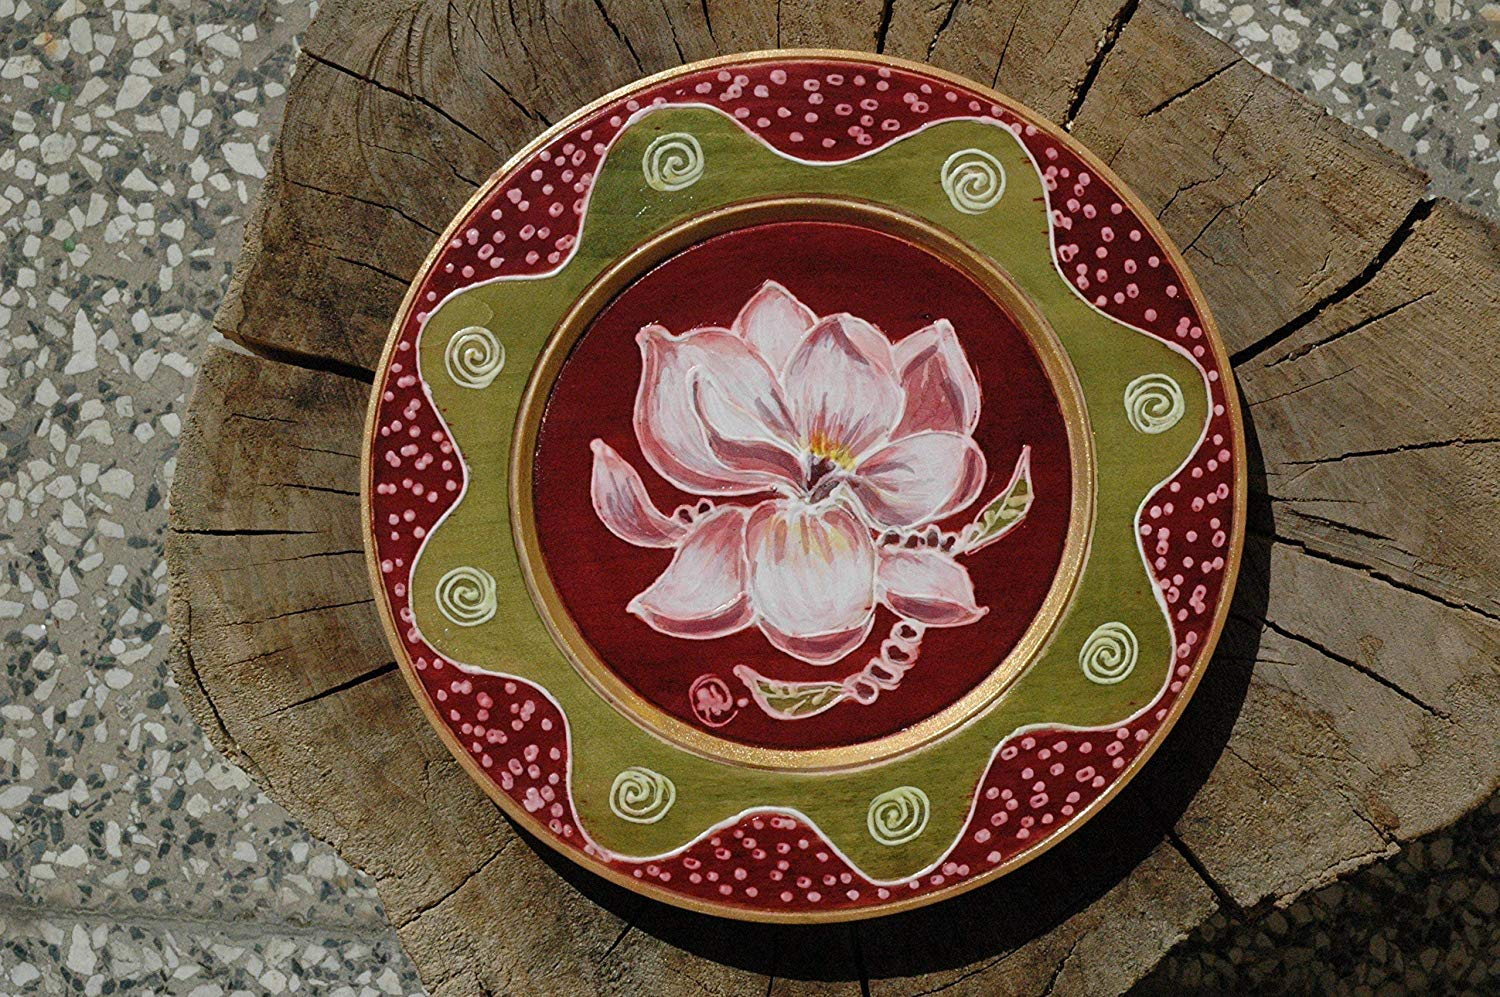 Sale!!!10% Off,Magnolia Wooden Plates, Hand Painted with Magnolia Flower, Magnolia Illustration on Wood Plate, Painting Magnolia, Artwork on Wood, Wall Art.